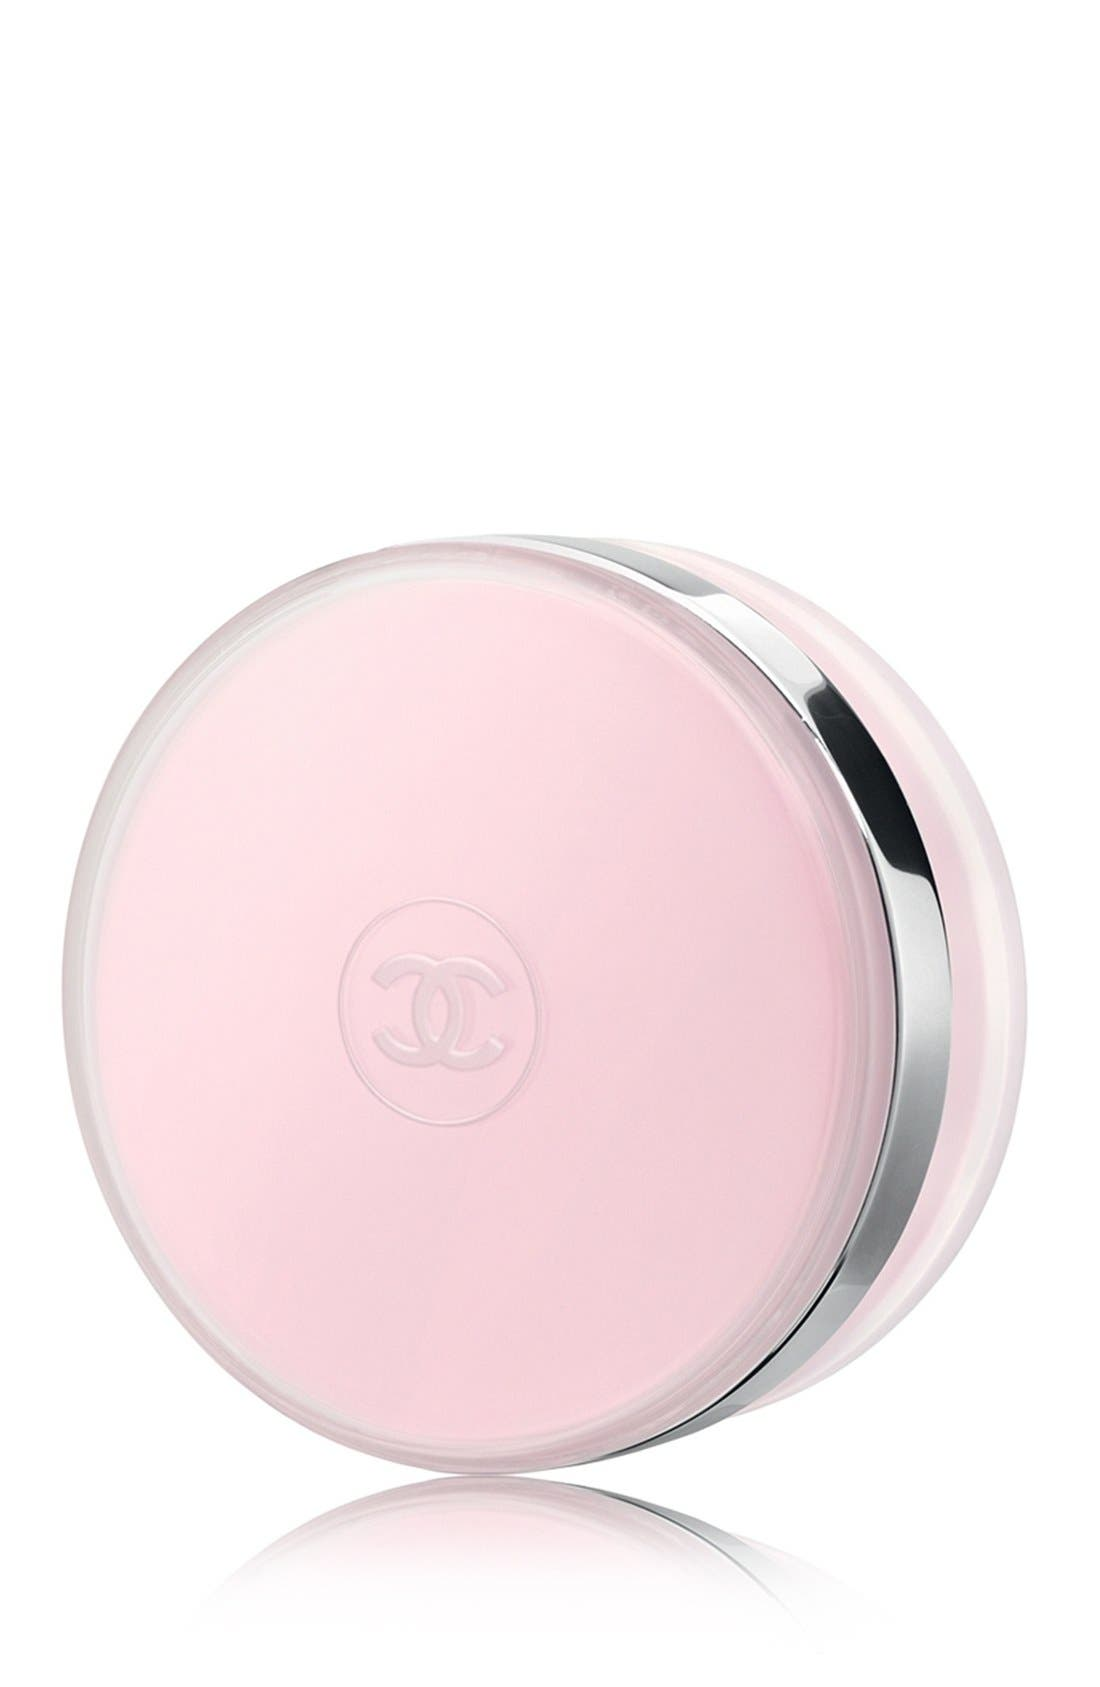 CHANEL, CHANCE EAU TENDRE<br />Moisturizing Body Cream, Alternate thumbnail 2, color, NO COLOR